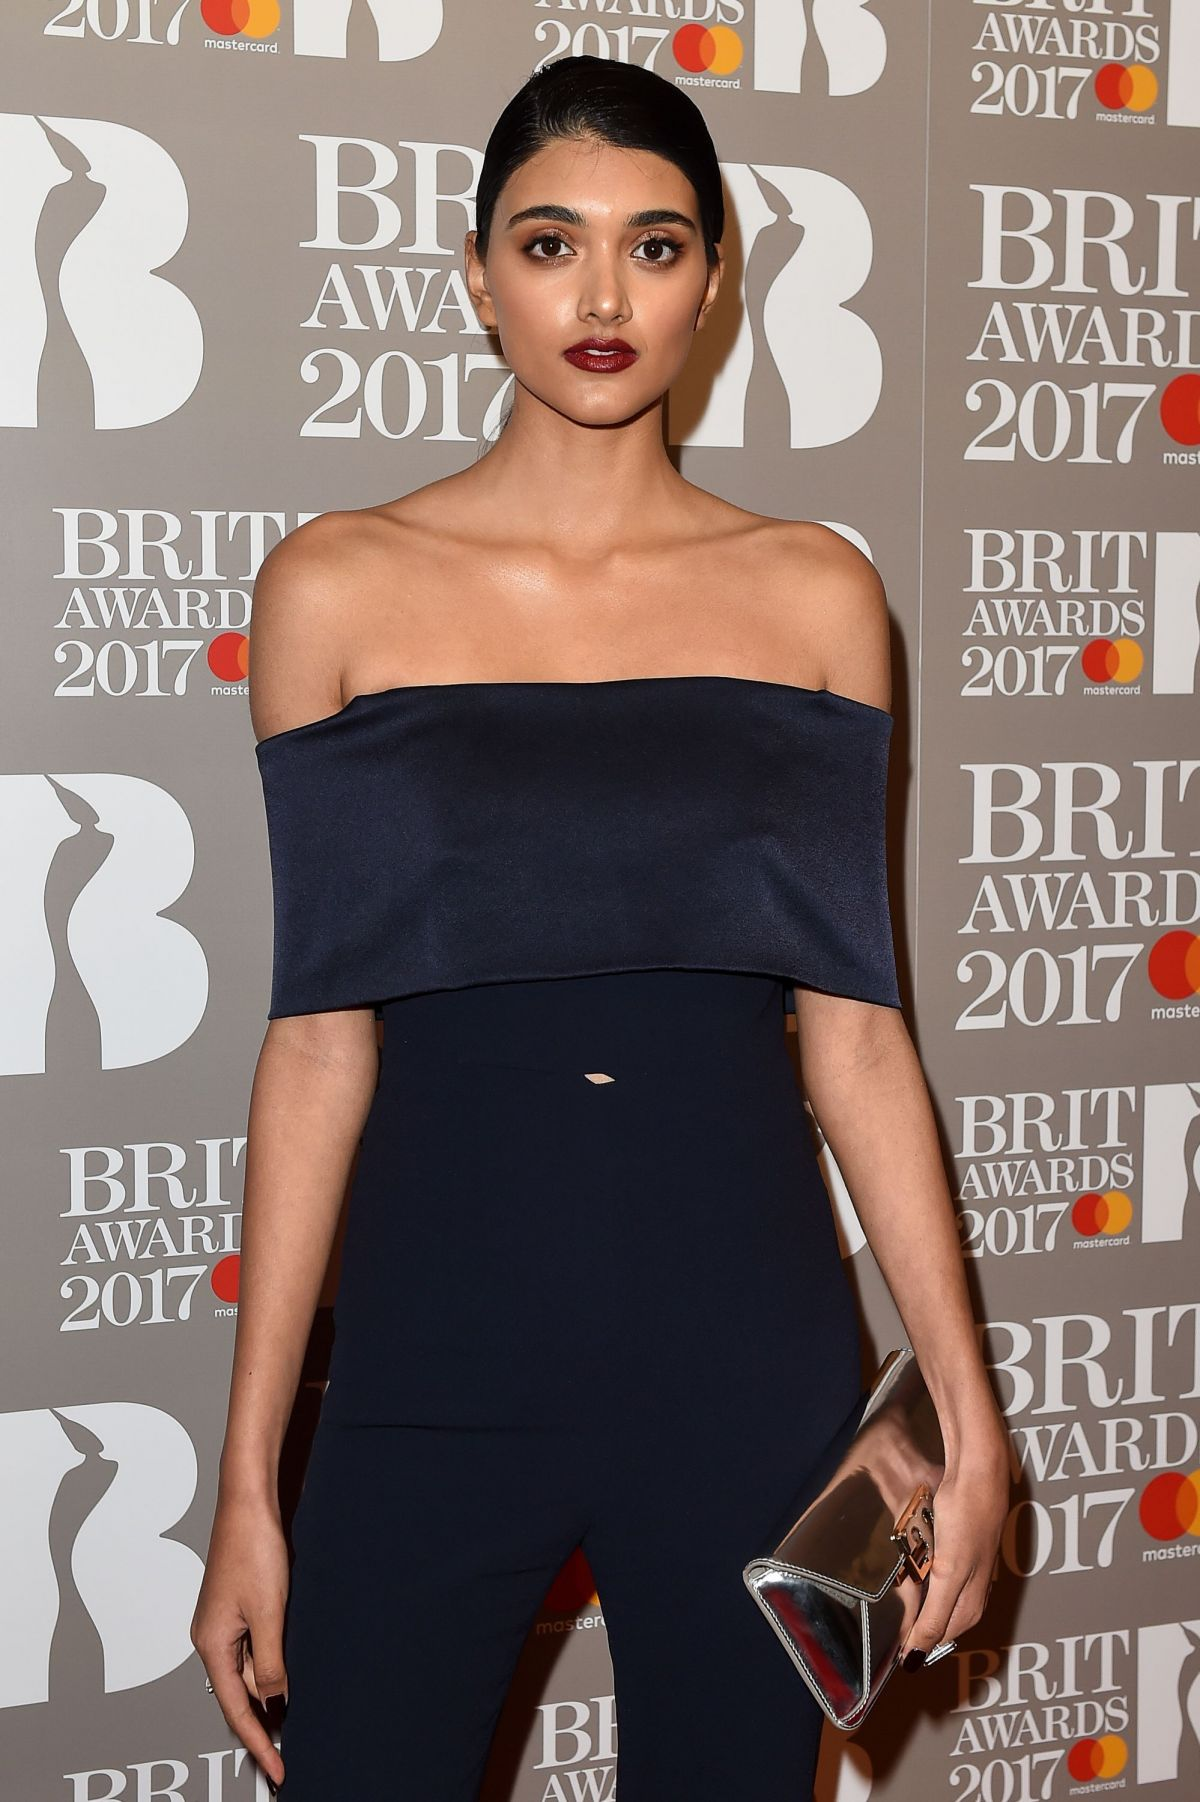 NEELAM GILL at Brit Awards 2017 in London 02/22/2017